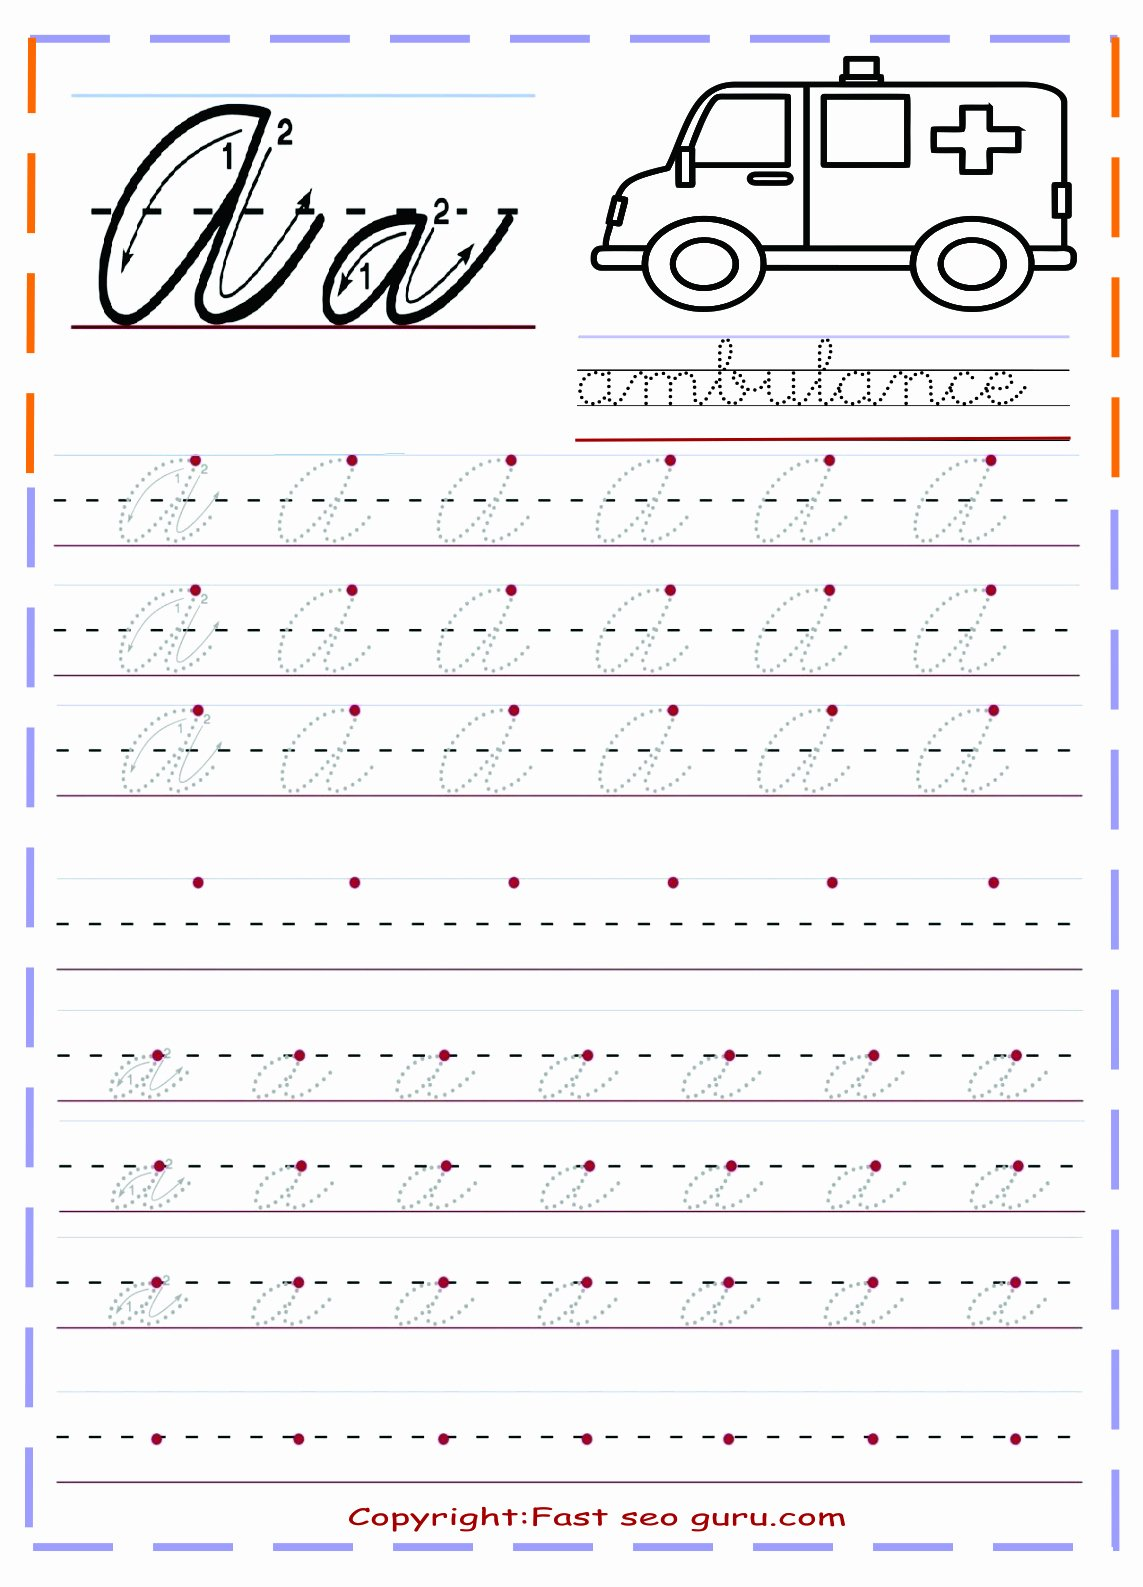 Cursive Handwriting Practice Fresh 1000 Ideas About Cursive Handwriting Practice On